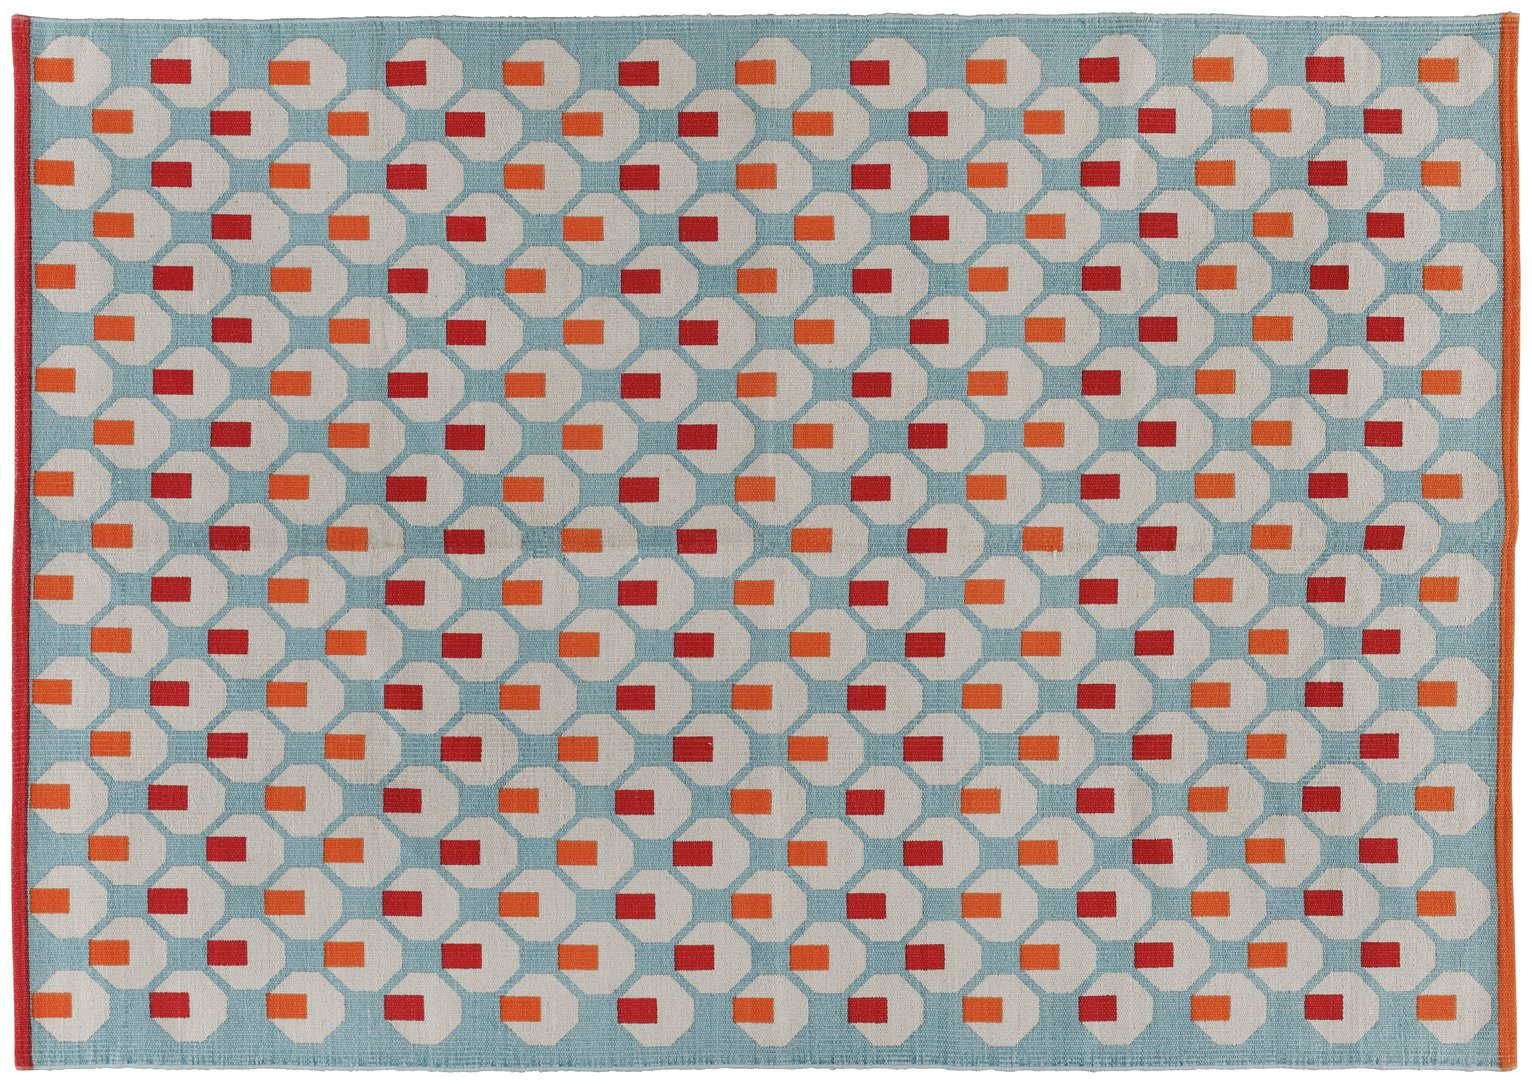 Habitat Octo Rug - 140x200cm - Multicoloured